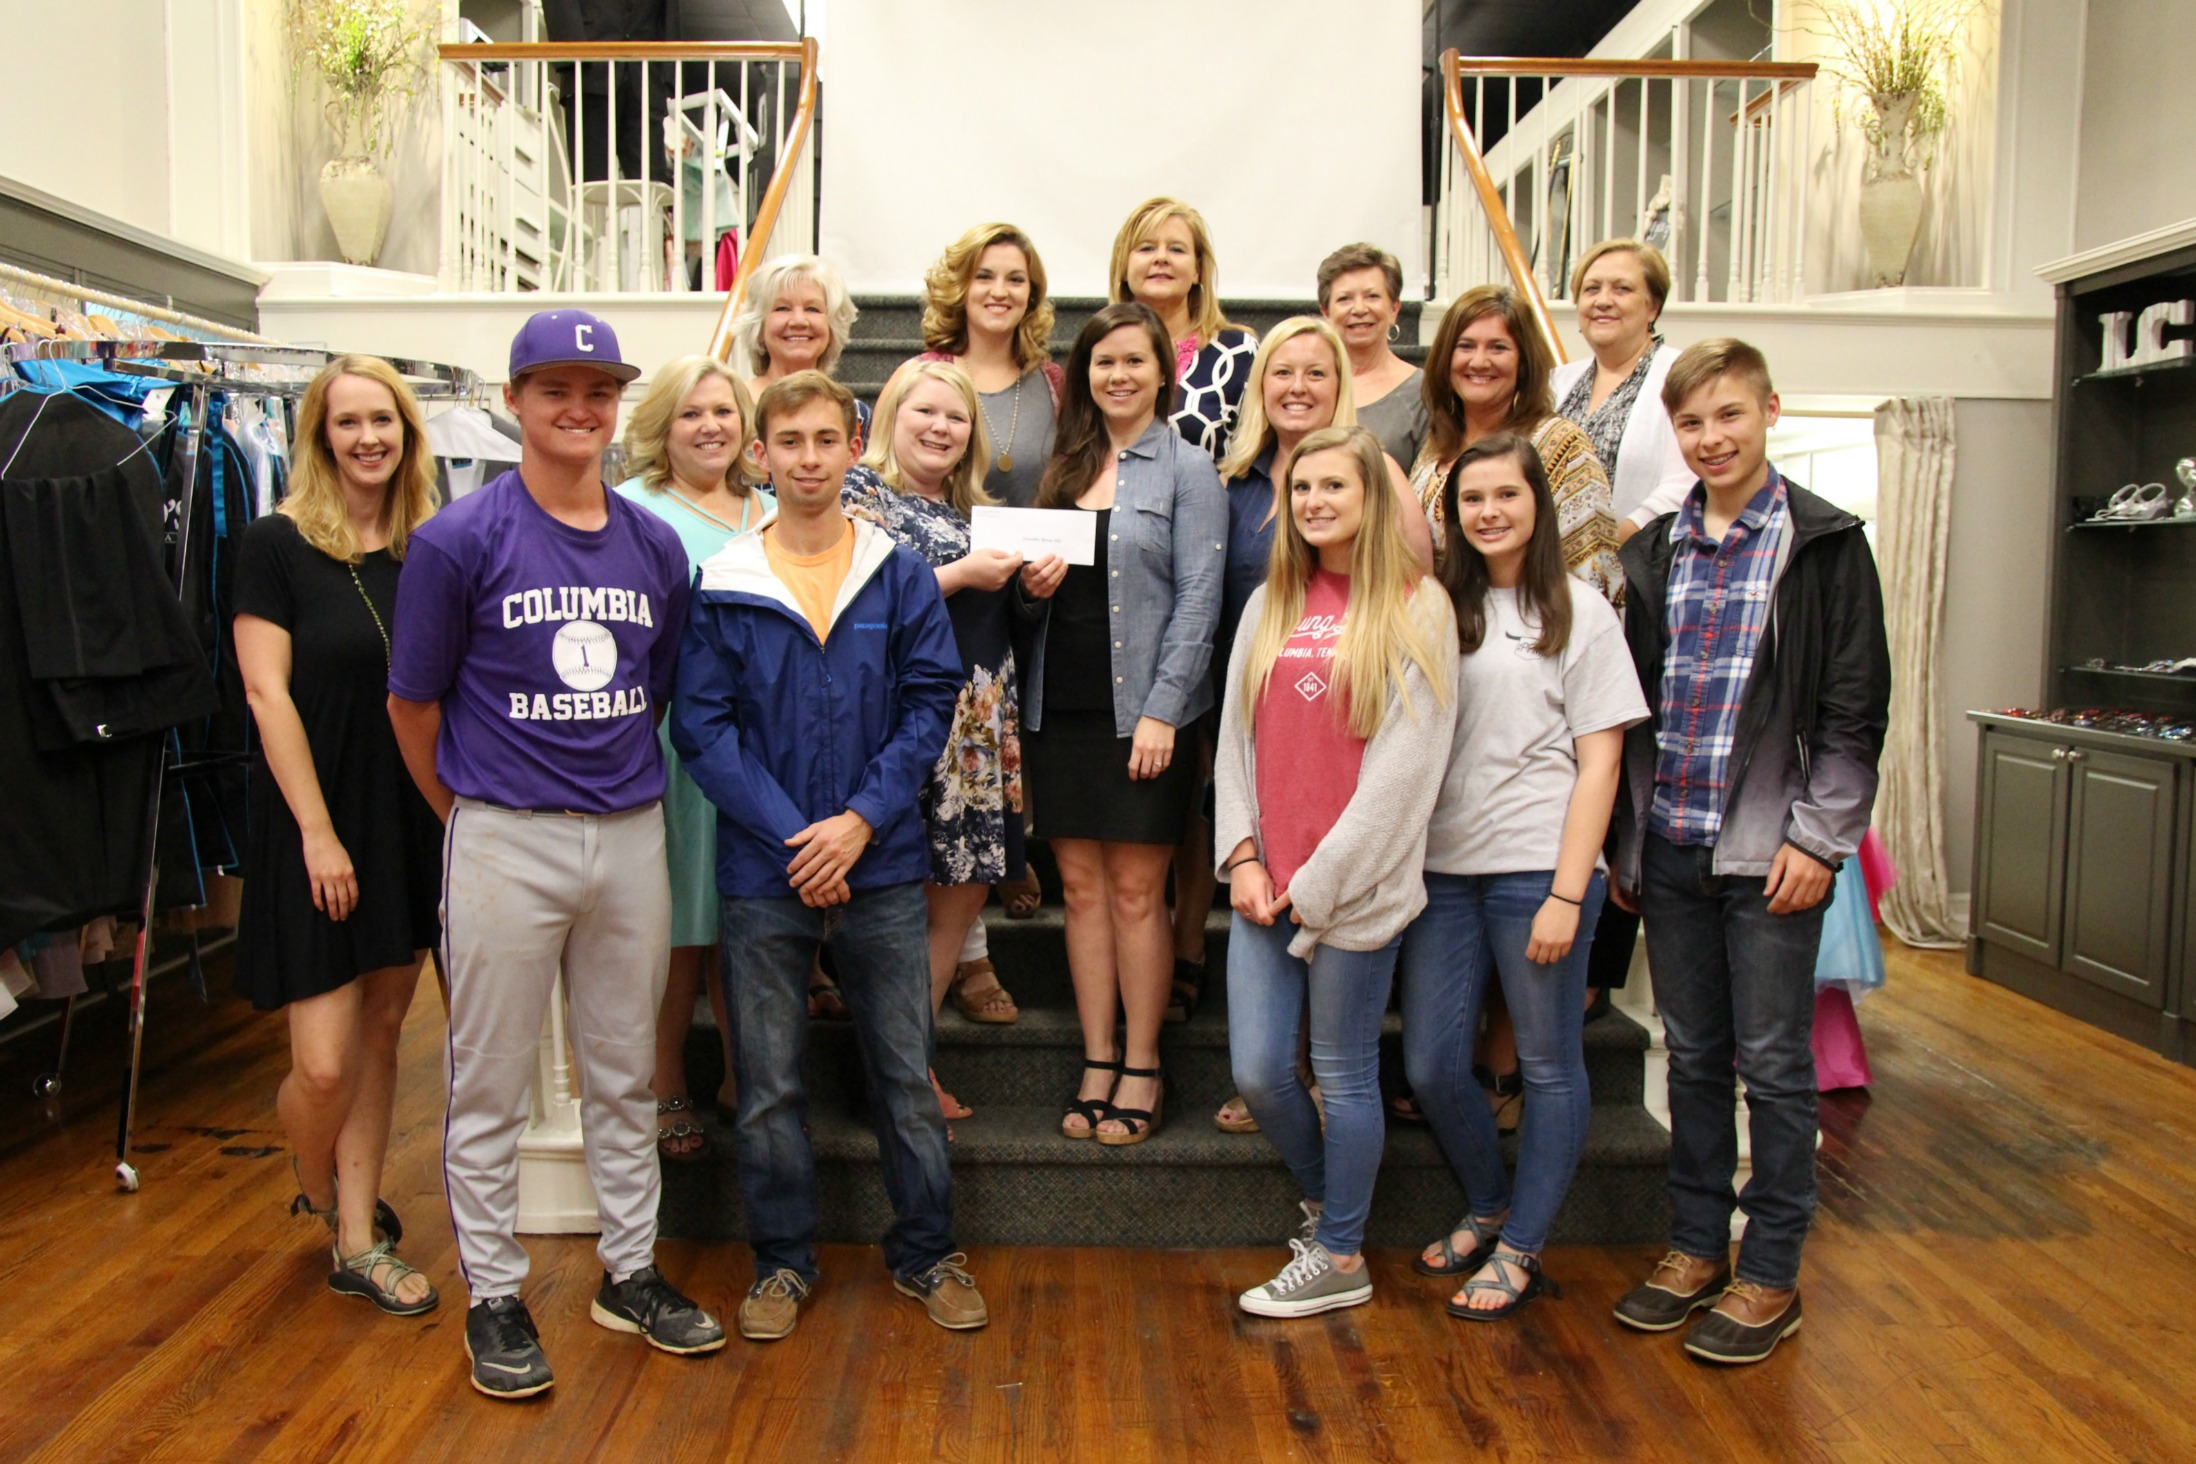 Maury County Benefit Ball Awards Three Local Nonprofit Organizations  $16,500 Each | offtheduck